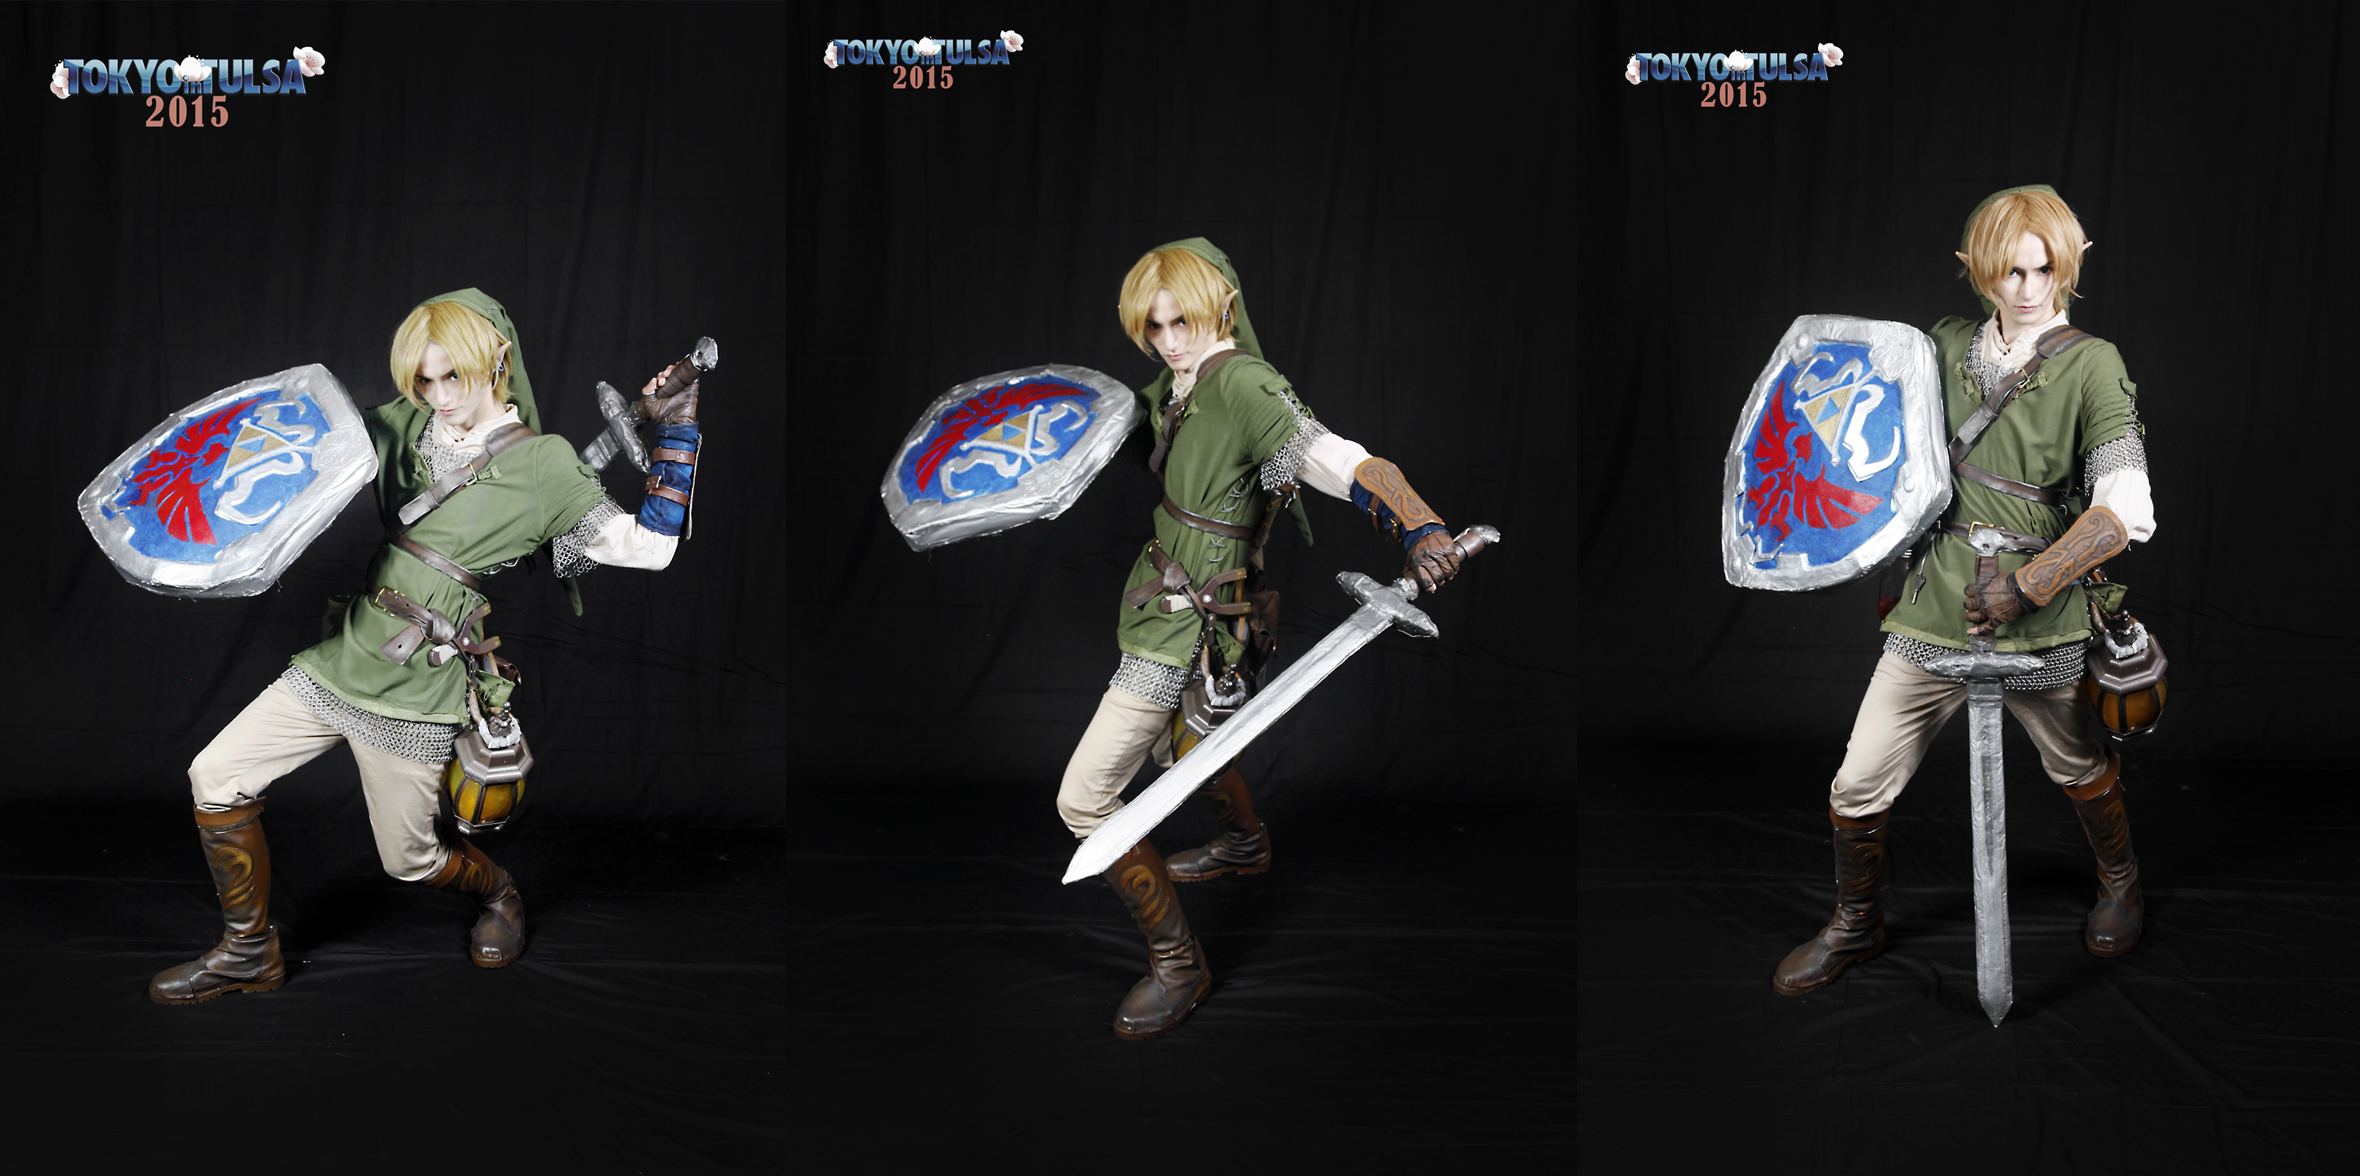 Link: Charity Photoshoot by Leustante